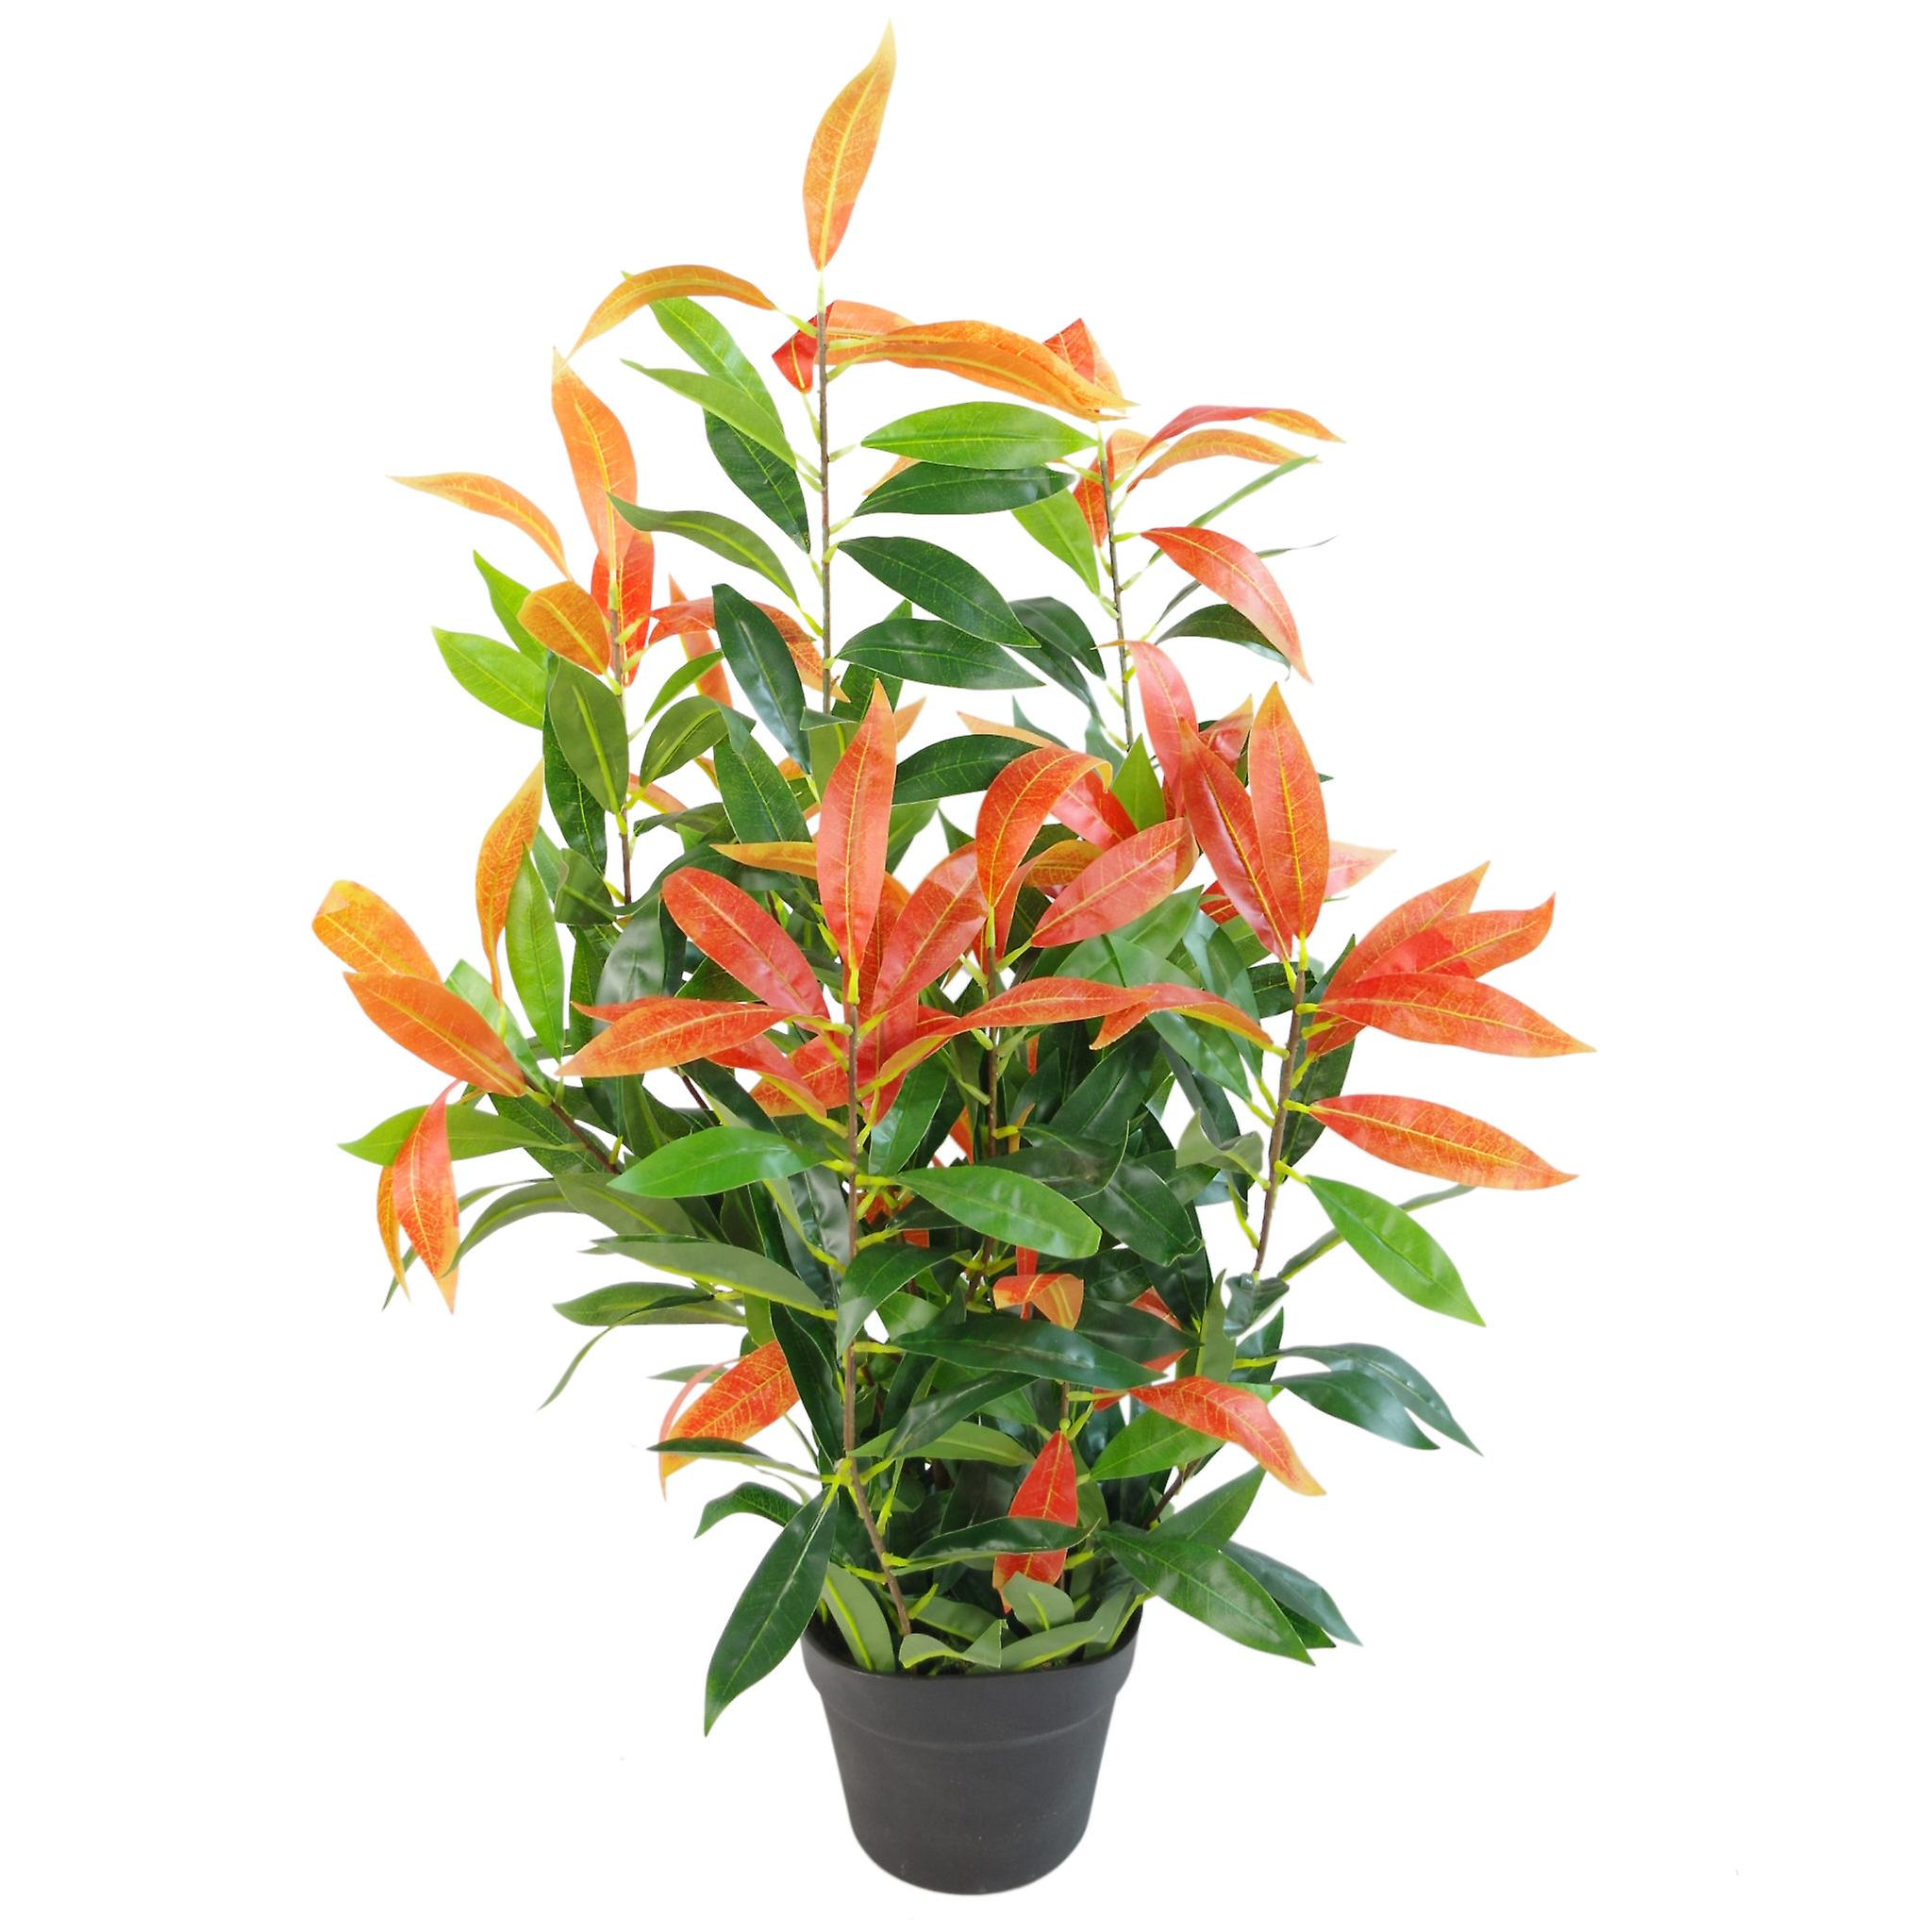 80cm Artificial Red and Green Ficus Plant